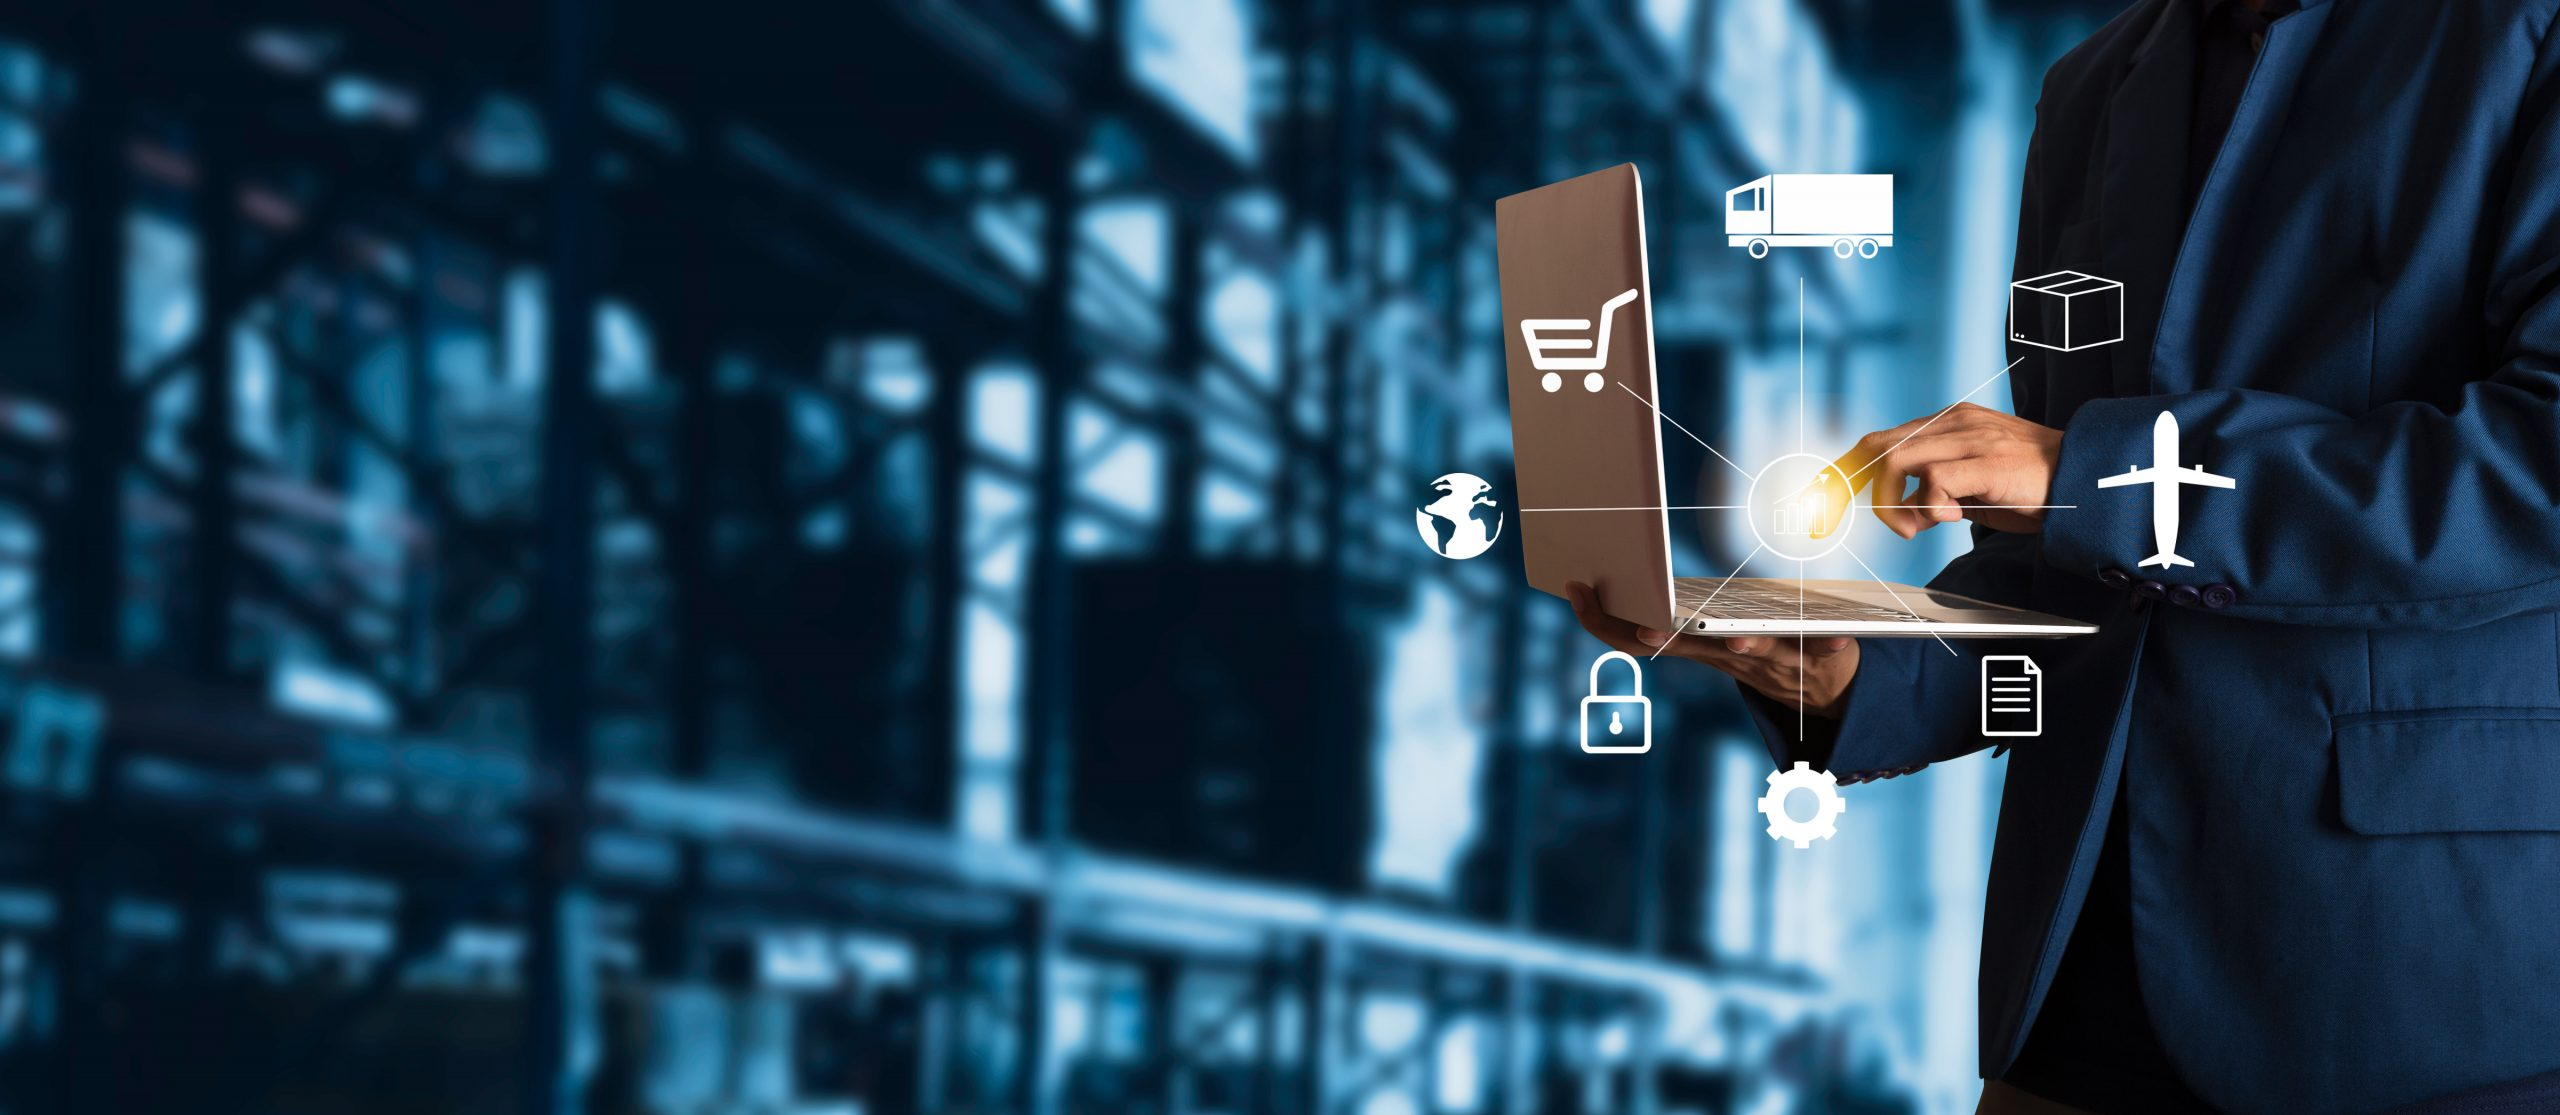 Three Key Layers To Building Resiliency Into a Complex Supply Chain